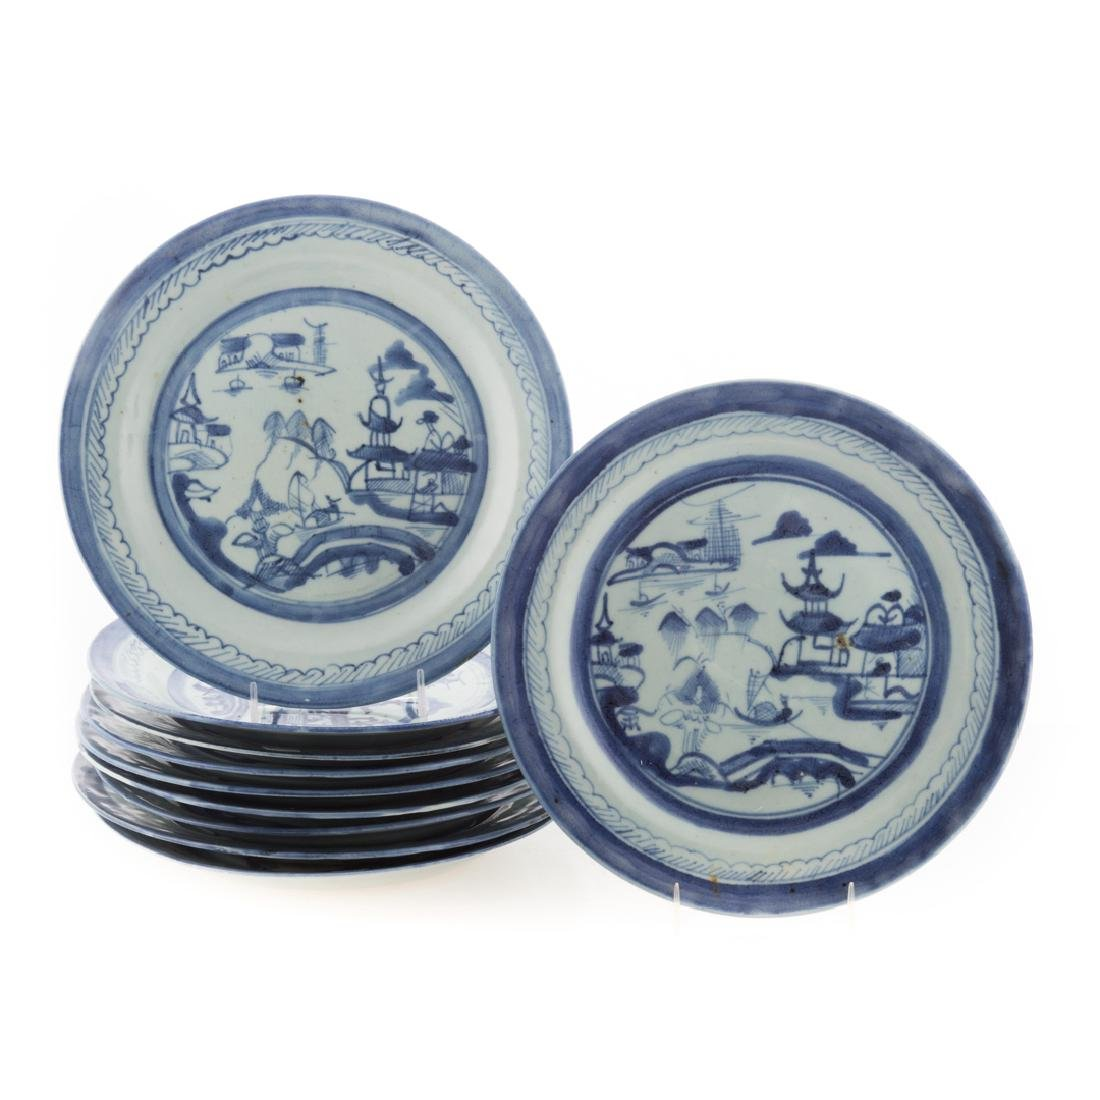 10 Chinese Export Canton dinner plates